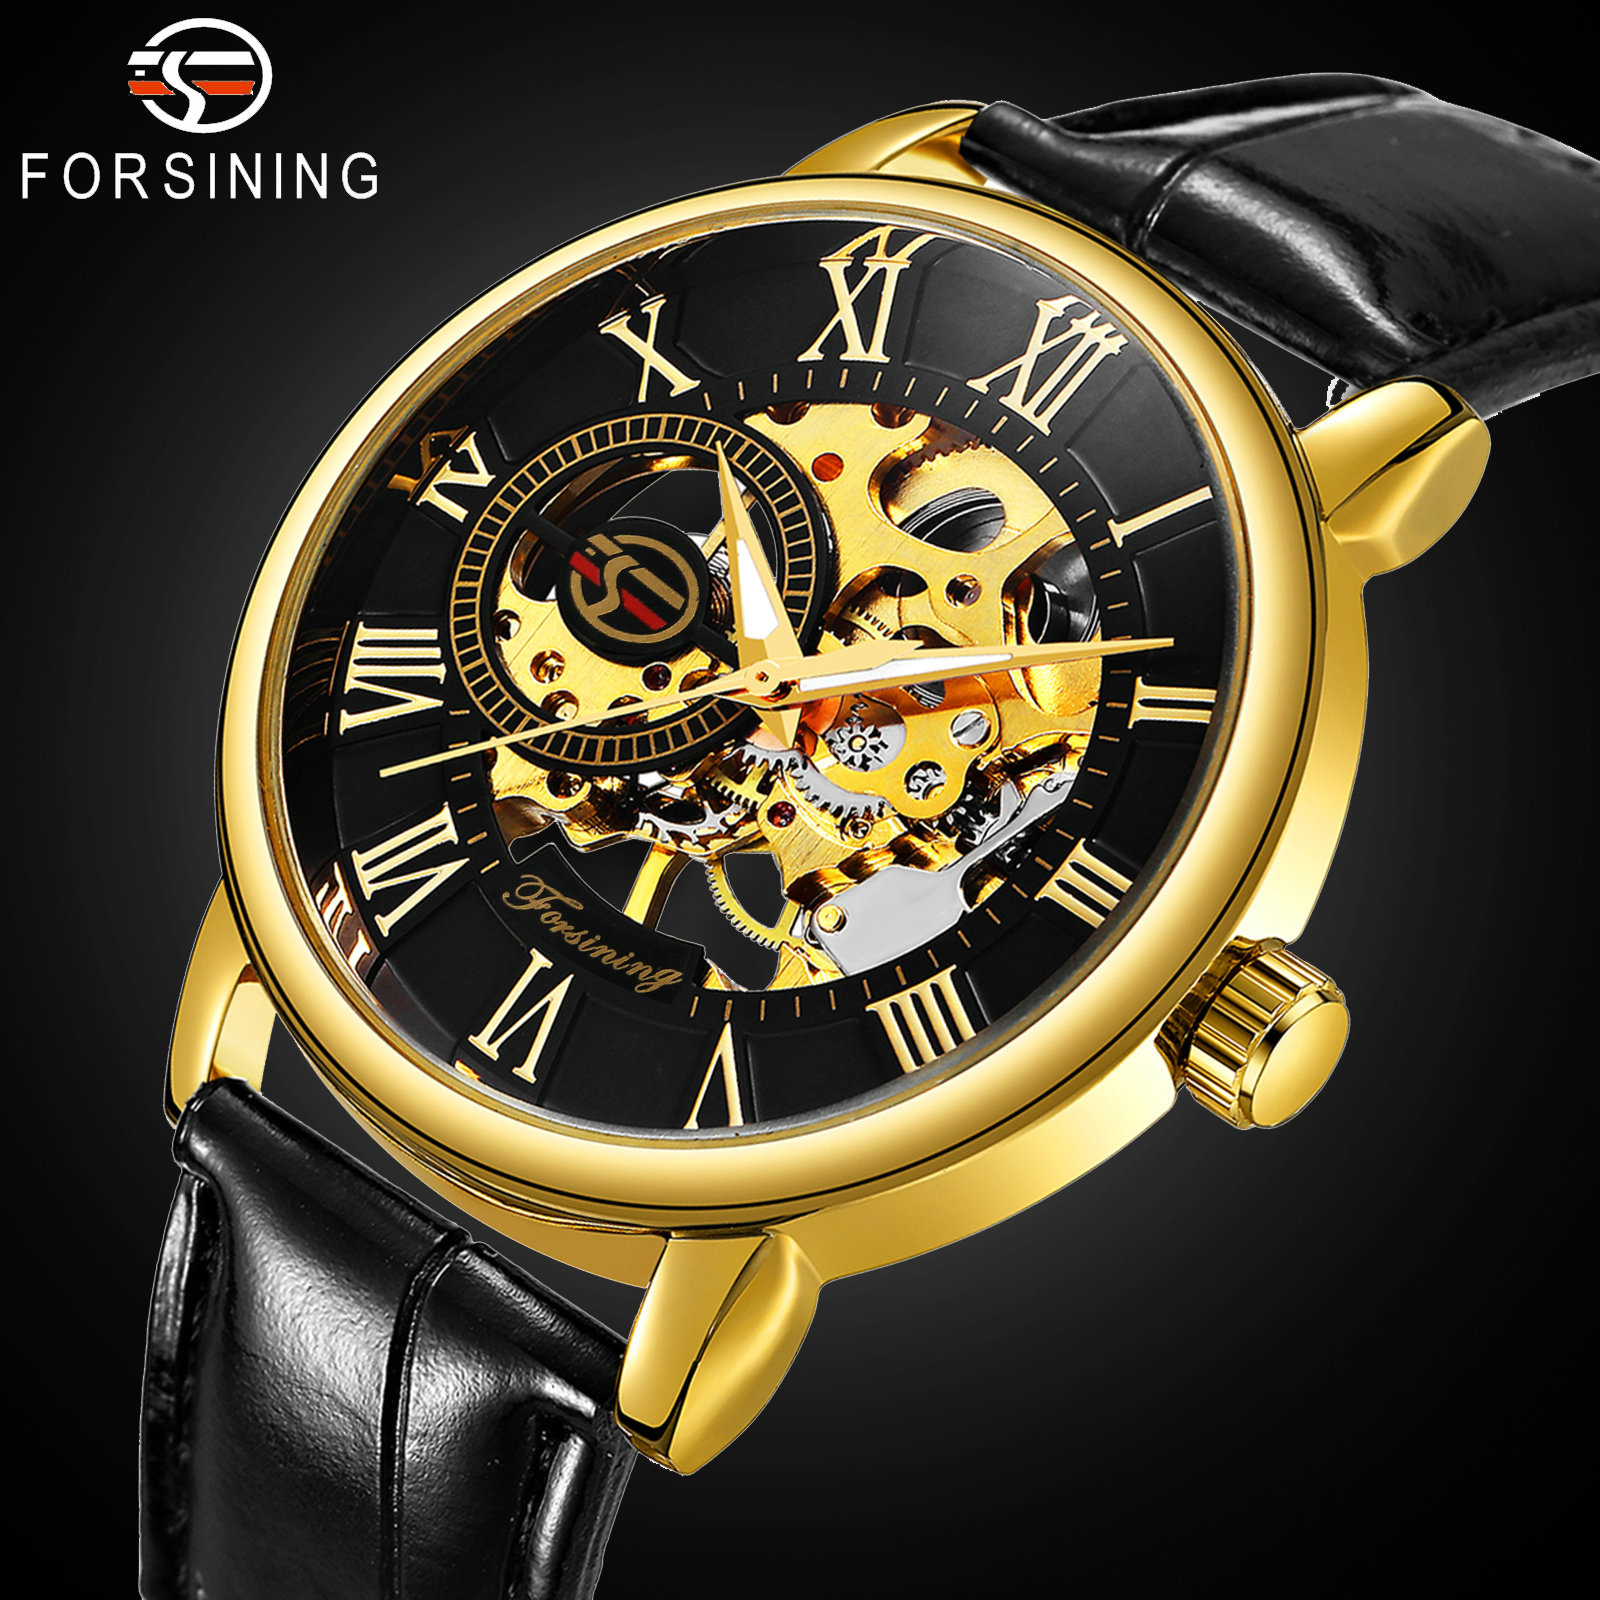 2019 FORSINING 3D Logo Black Gold Men Mechanical Watch Montre Homme Man Watches Top Brand Luxury Leather WINNER Skeleton Design